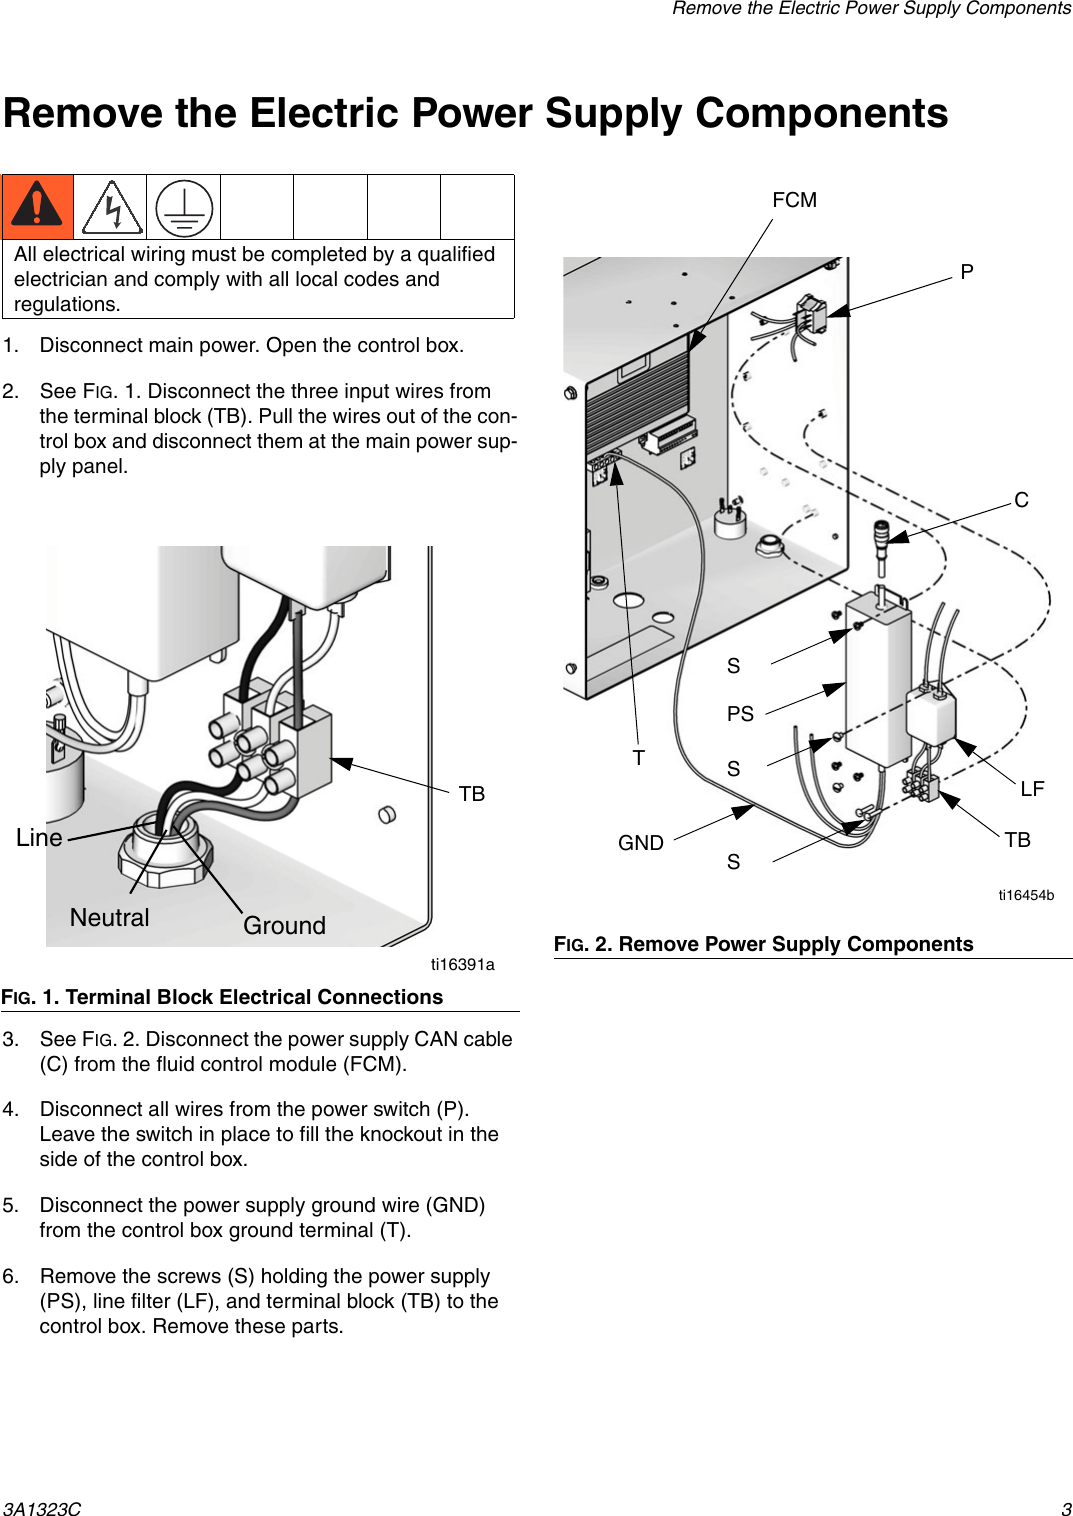 Graco 3a1323c Promix 2ke Alternator Power Conversion Kit Users Wiring Diagram Page 3 Of 6